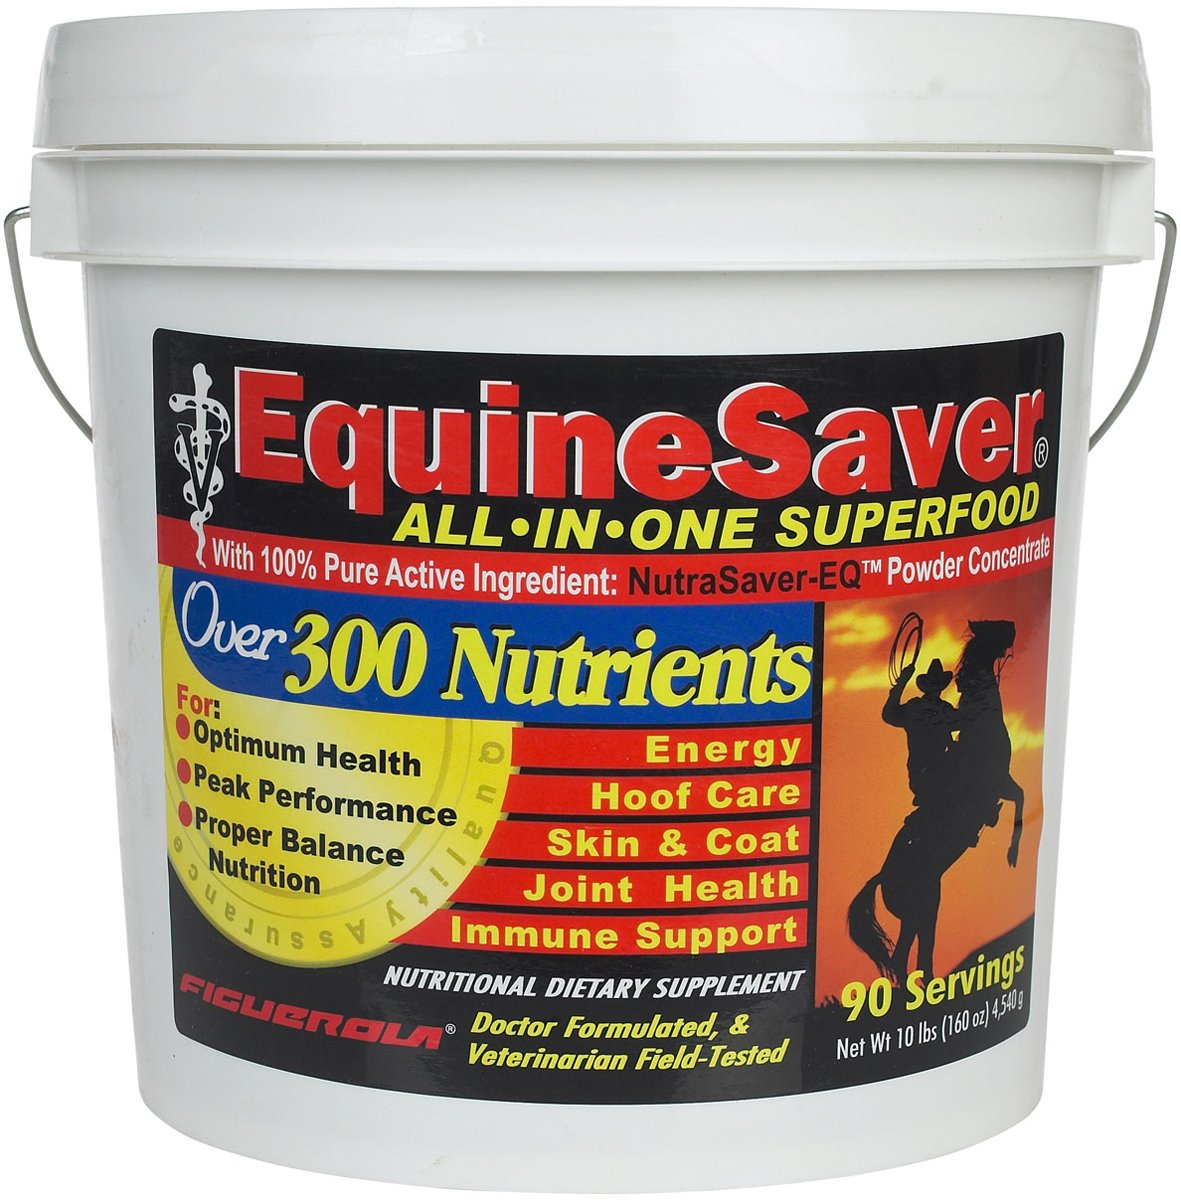 EquineSaver Nutritional Supplement for Horses by Figuerola. Contains NutraSaver-EQ  300 Key Nutrients to Supply Your Horse's Nutritional and Therapeutic Needs for Optimal Health and Performance.